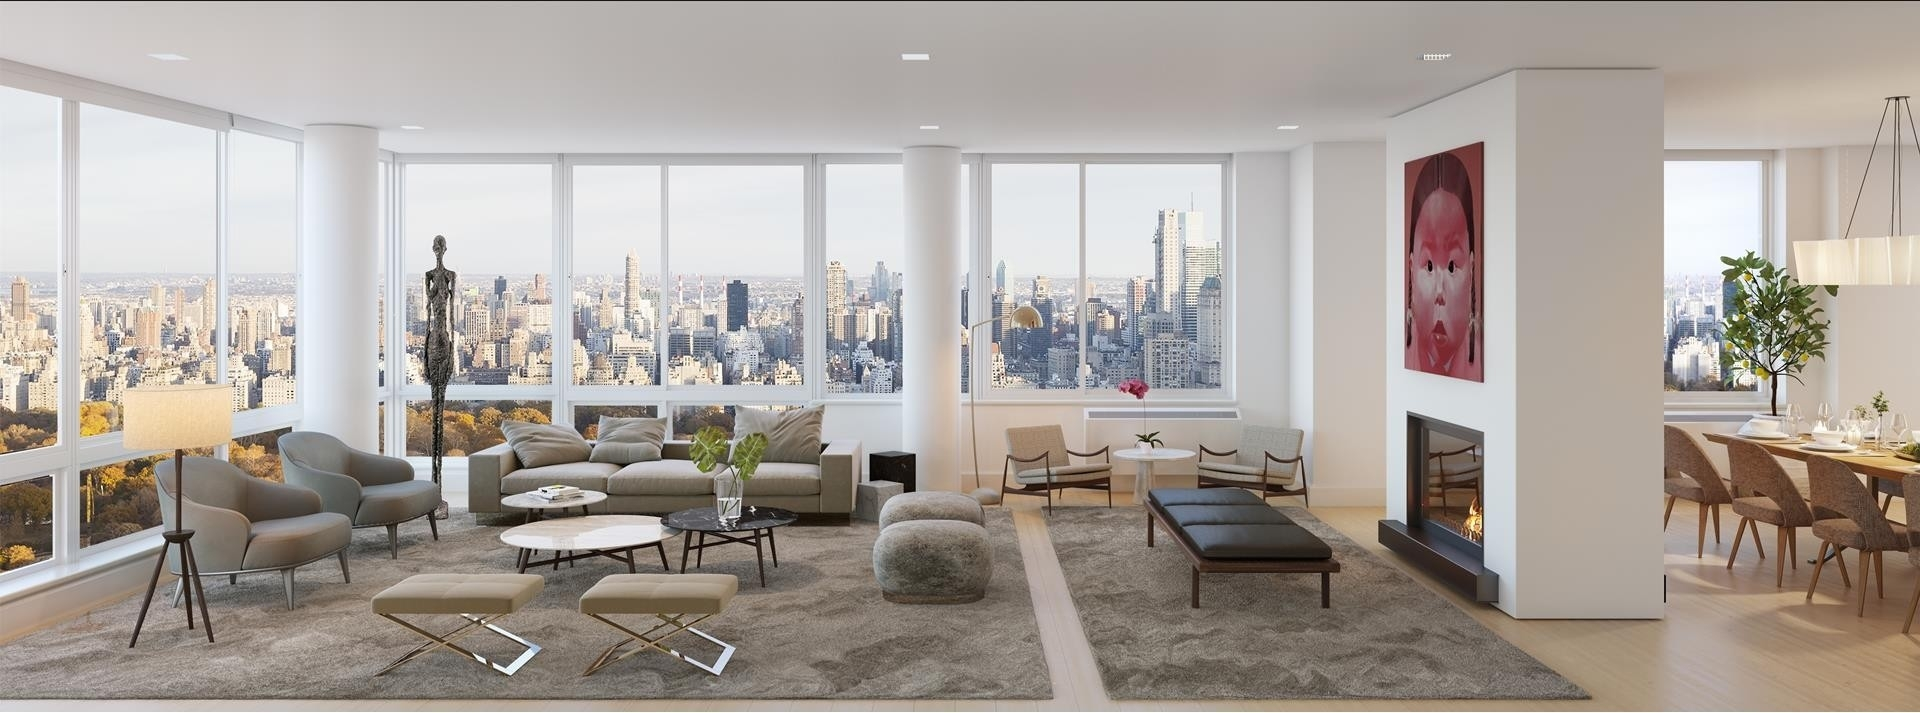 Condominium for Sale at The Millennium Tower, 101 West 67th St, 55PH2AB Lincoln Square, New York, NY 10023